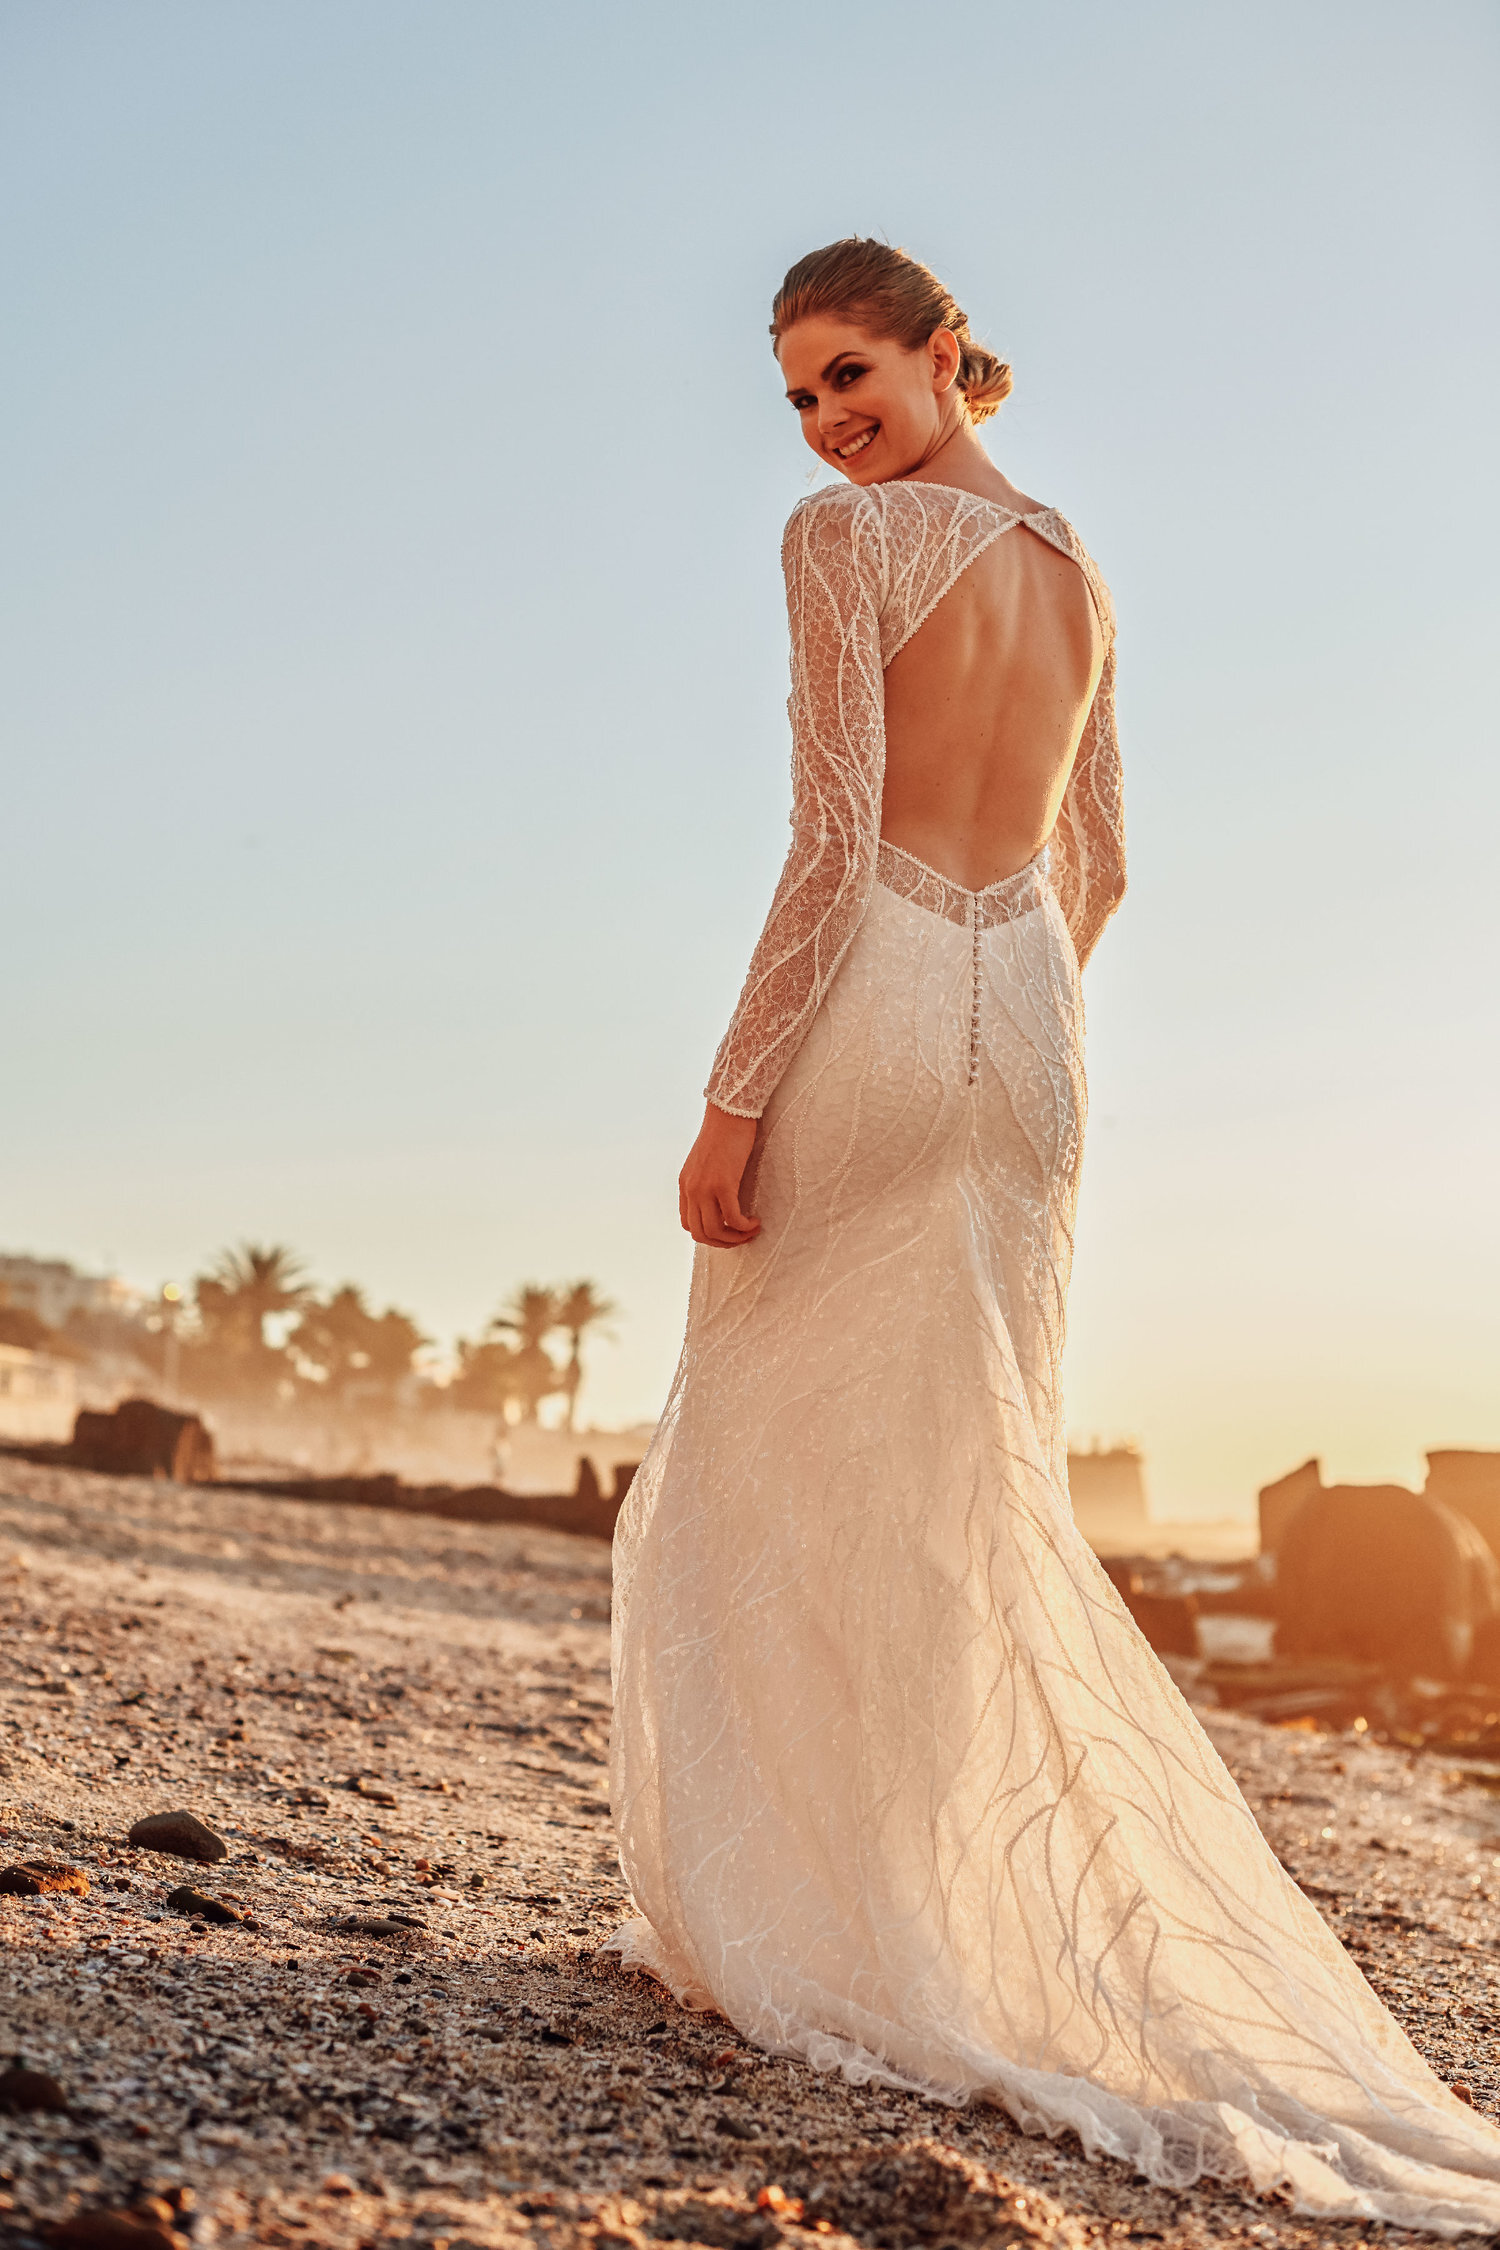 Nymphea - The Nymphea Gown lends a subtle sparkle to the bride that wants to catch the eye. Waves of beads and sequins wash over sea foam white, creating a classic but striking silhouette. A slight train spills from the figure-hugging form, and an open back lends some sensuality.